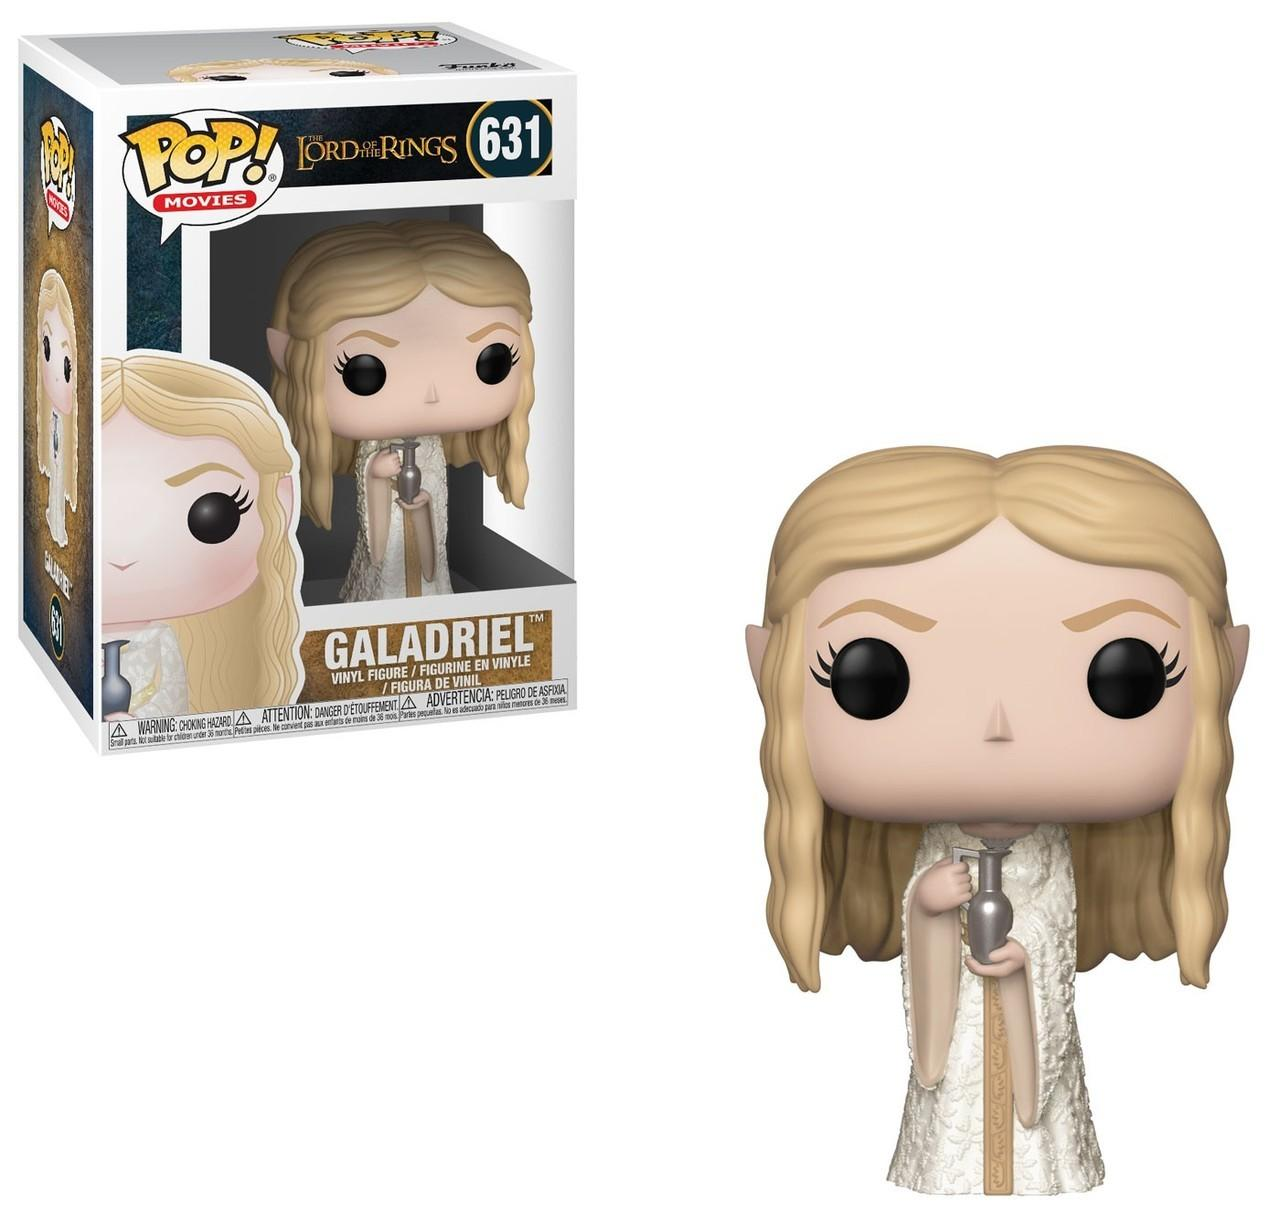 POP! Movies: The Lord of the Rings - Galadriel (631) Vinyl Figure